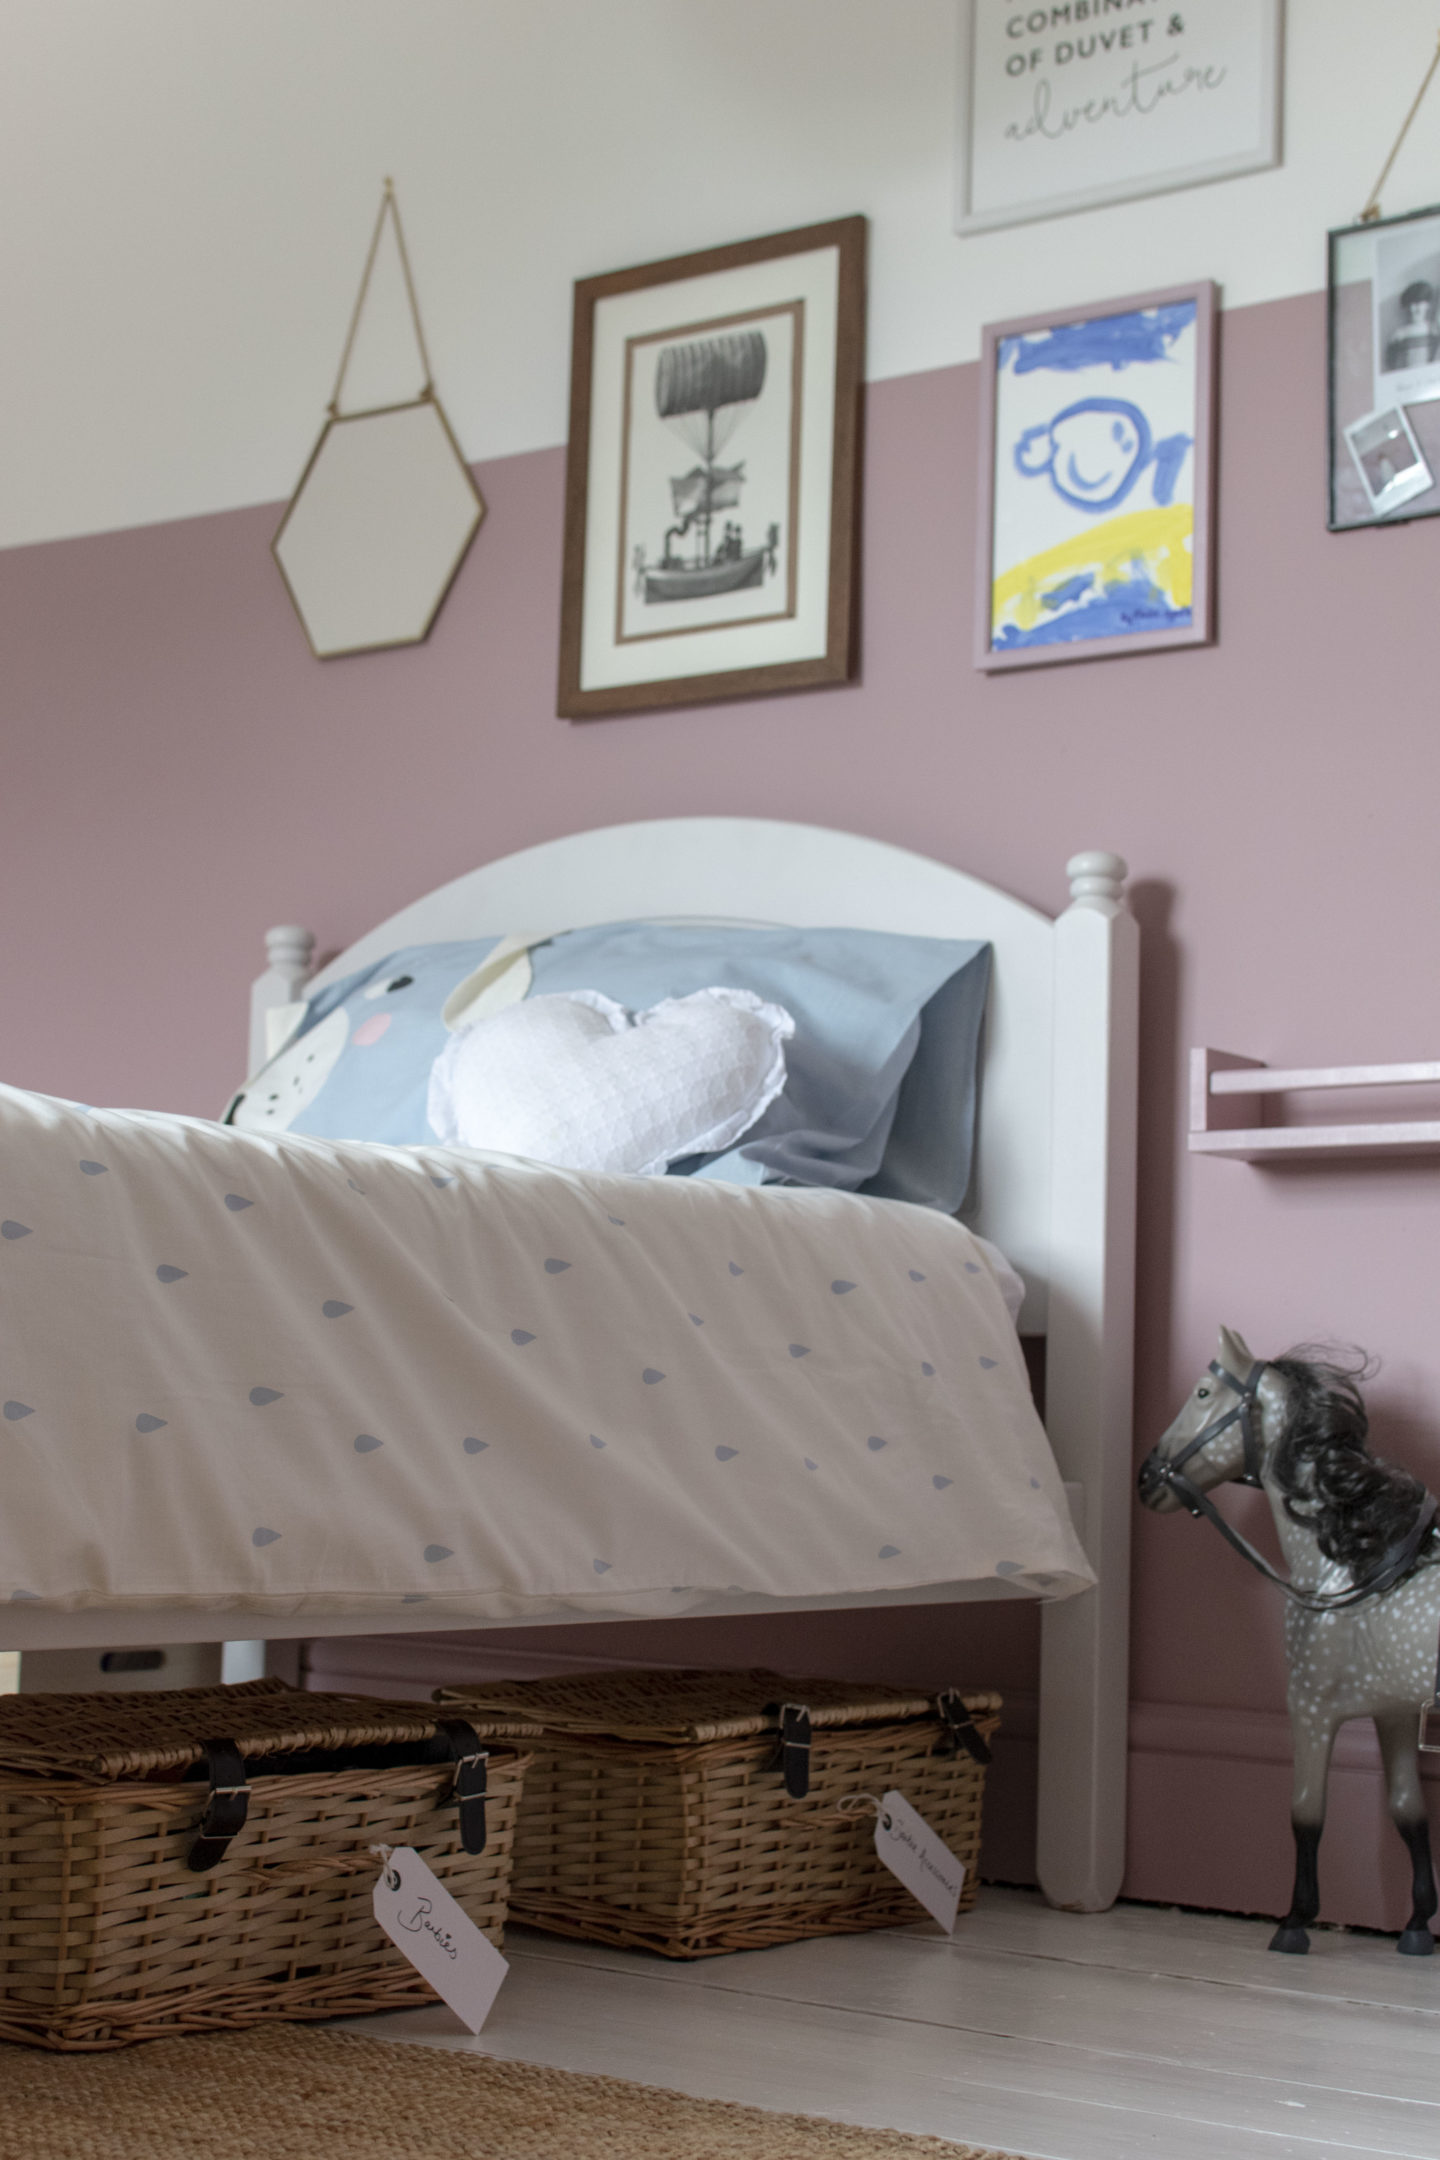 Elodie's Bedroom Update and a Few Toy Storage Ideas